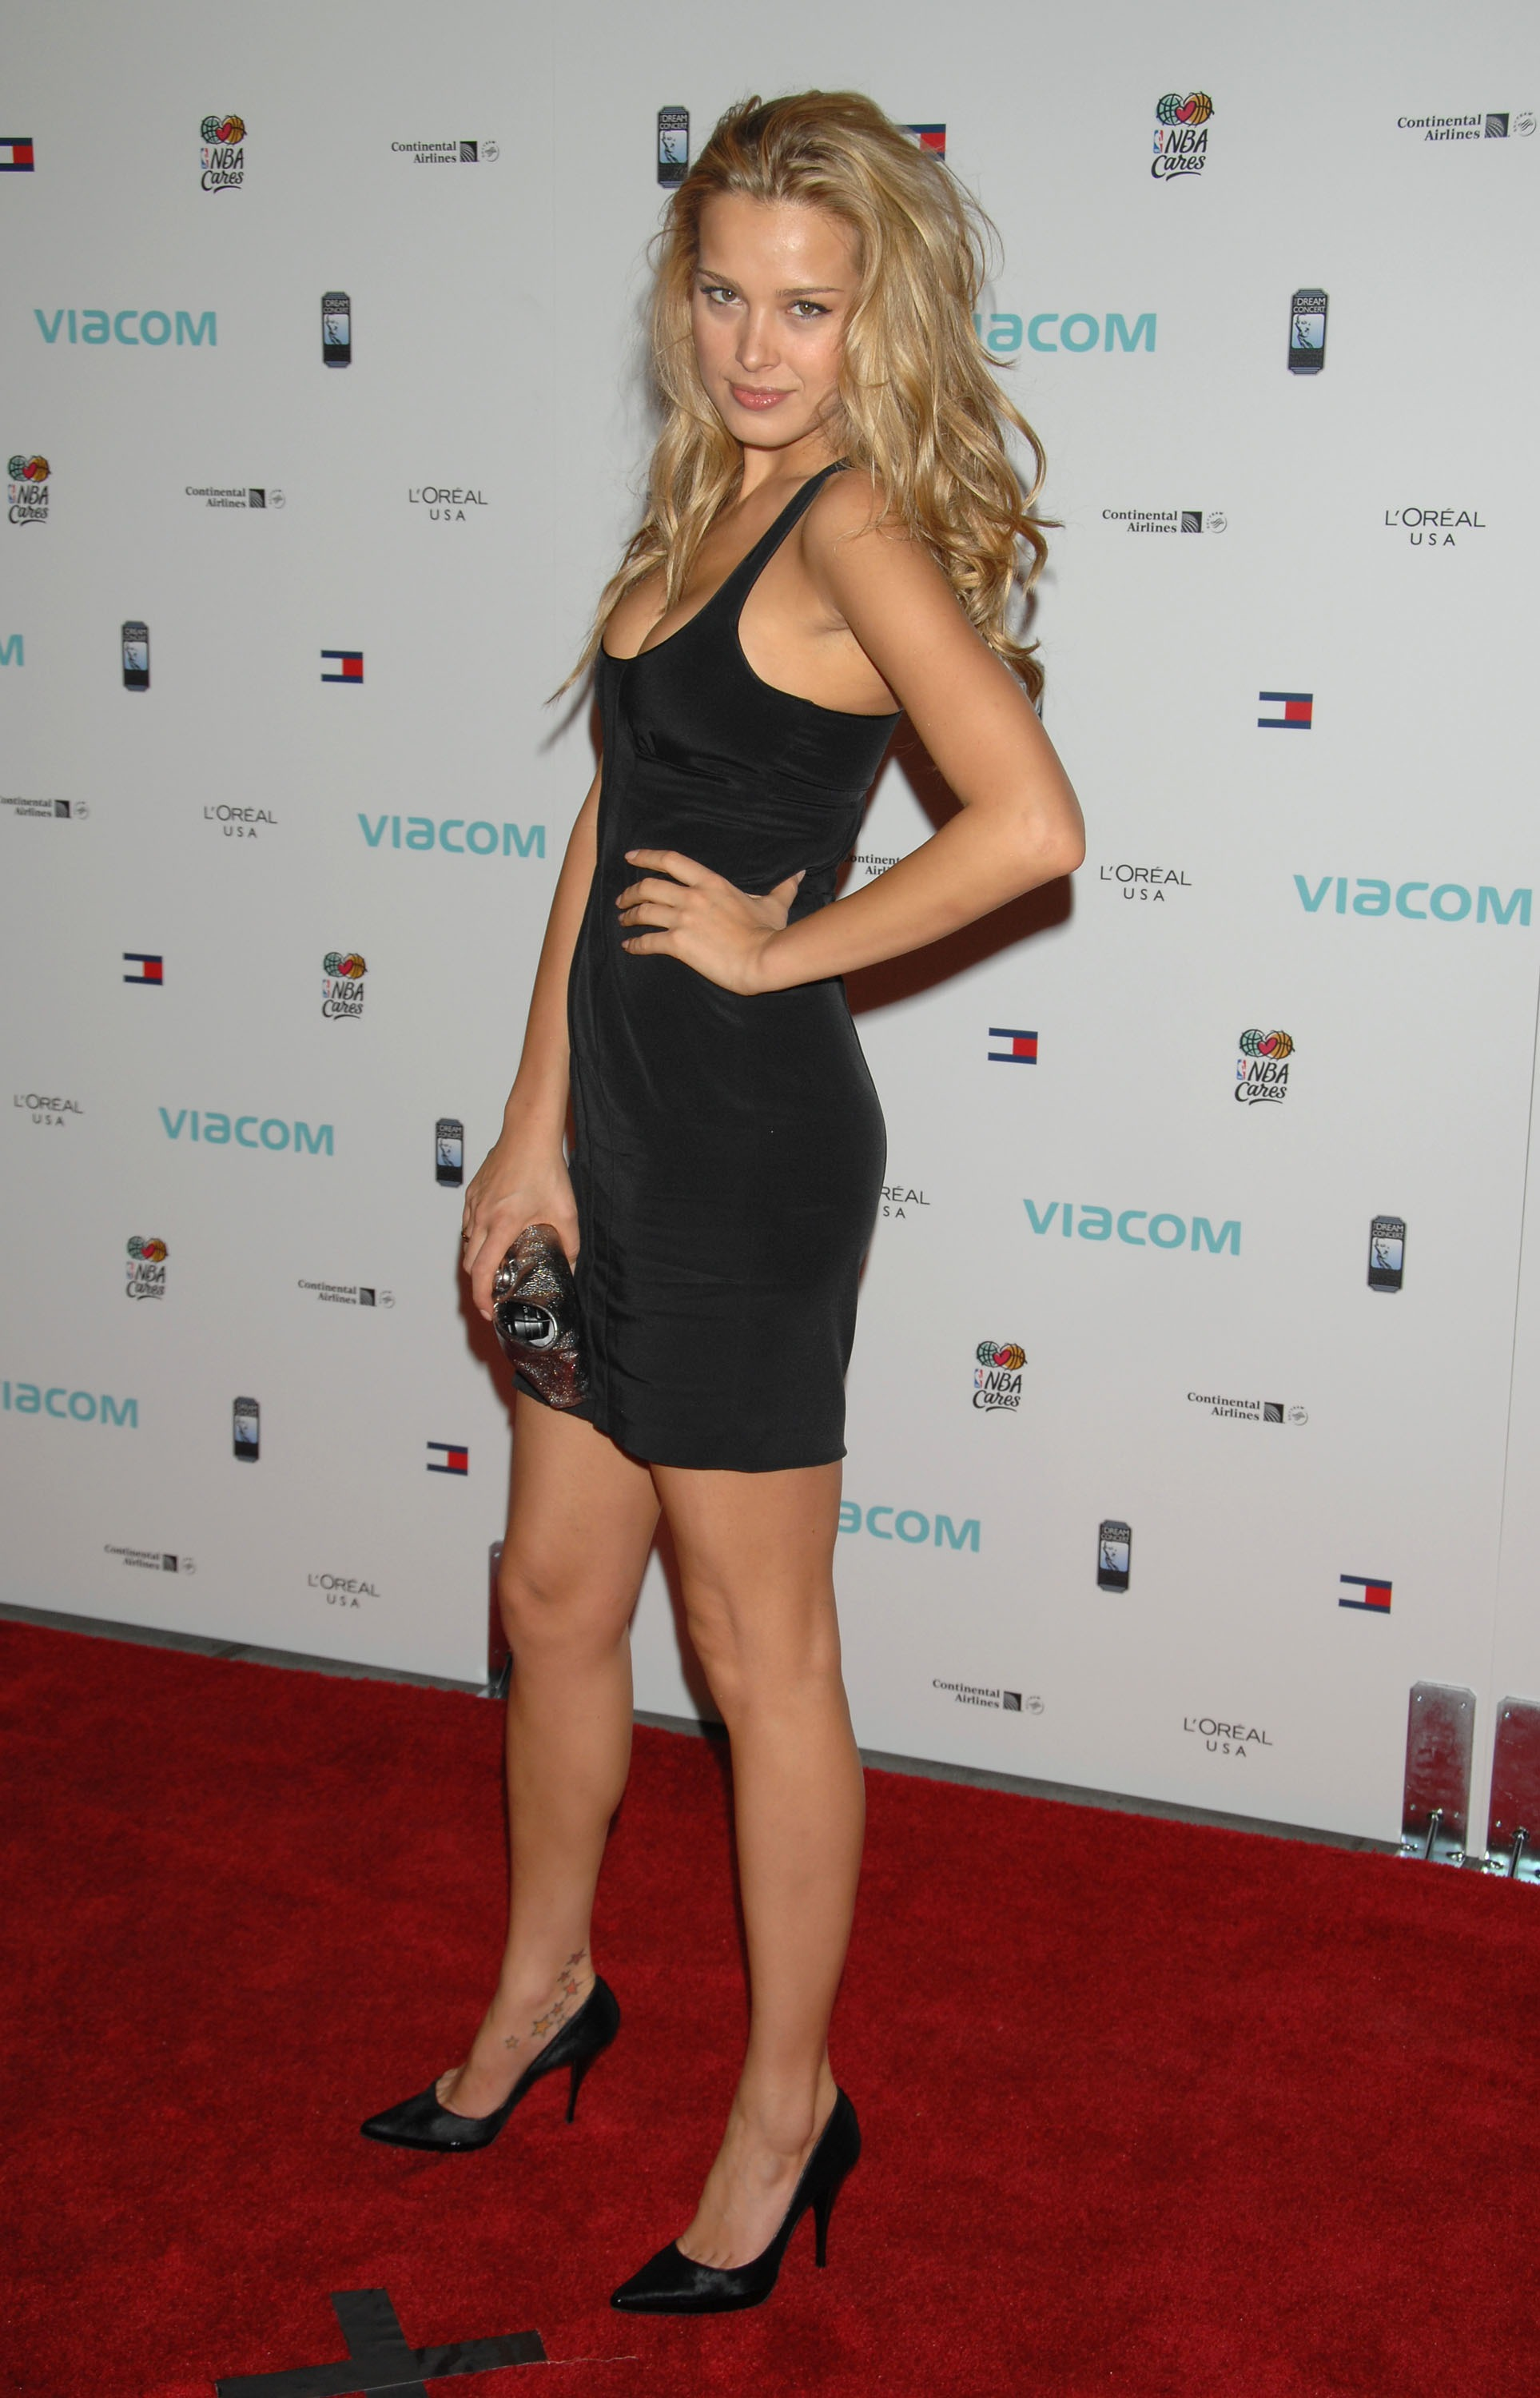 13205_celeb-city.eu_Petra_Nemcova_The_Dream_Concert_Backstage_09-18-2007_005_122_706lo.jpg